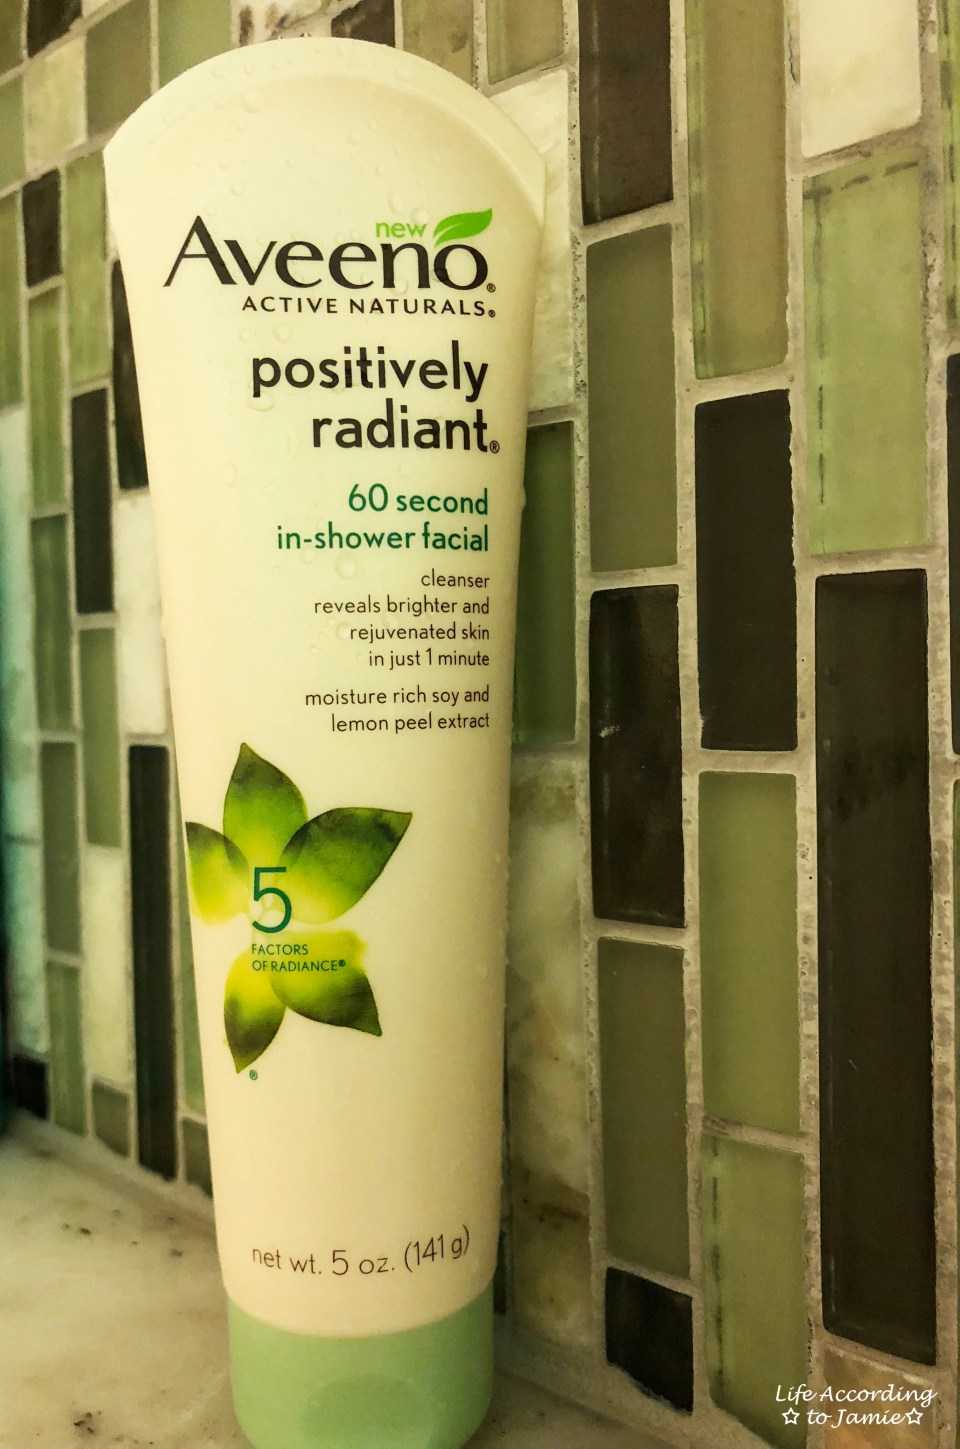 Aveeno 60 Second In-Shower Facial 1